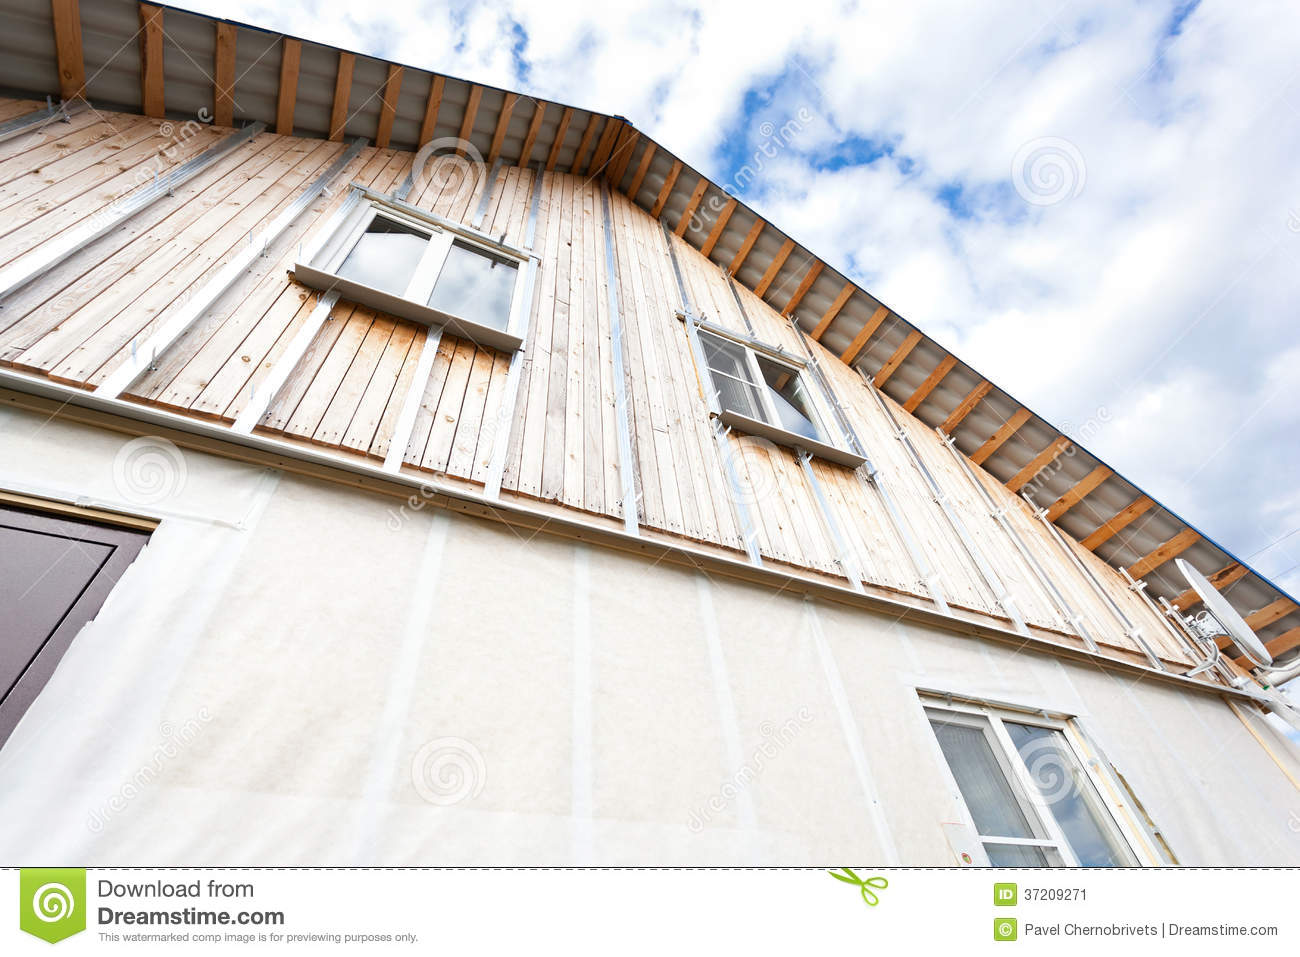 External wall insulation in wooden house stock image - Exterior house insulation under siding ...